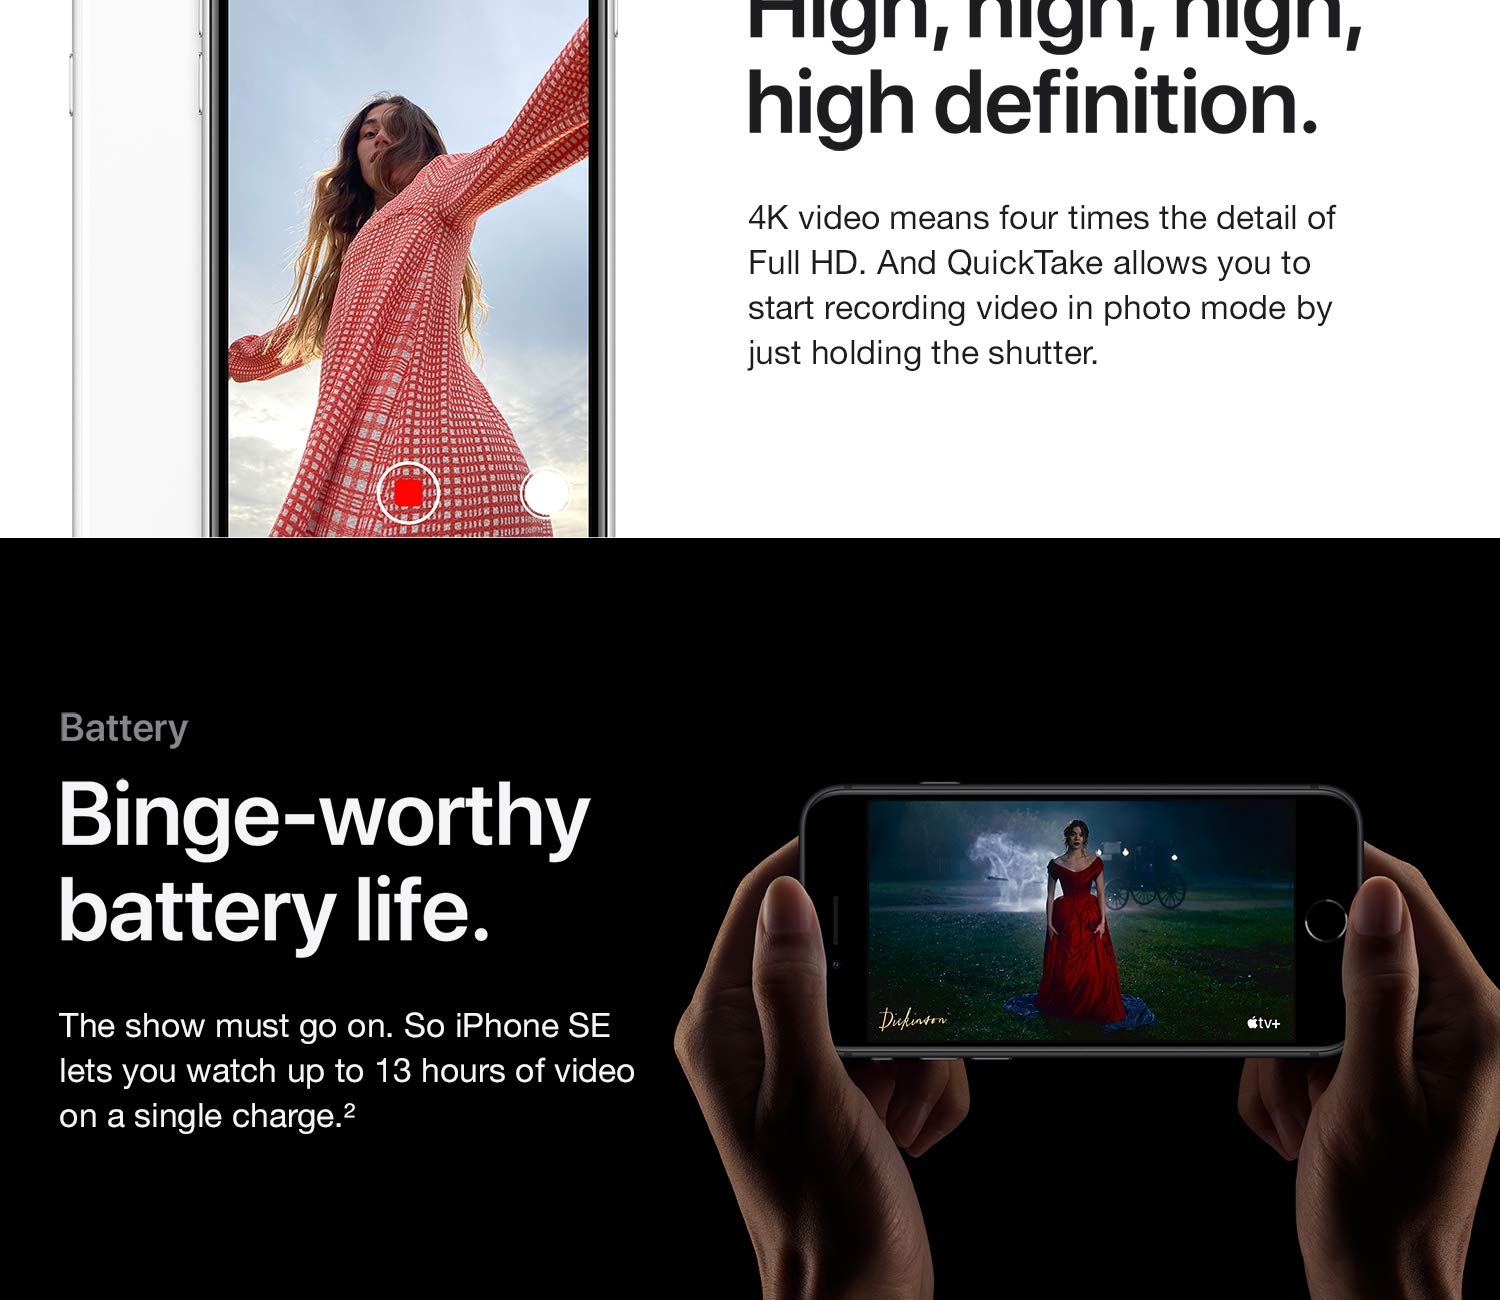 Video. High, definition. 4K video means four times the detail of Full HD. And QuickTake allows you to start recording video in photo mode by just holding the shutter. Batter. Binge-worthy battery life. The show must go on. So iPhone SE lets you watch up to 13 hours of video on a single charge.